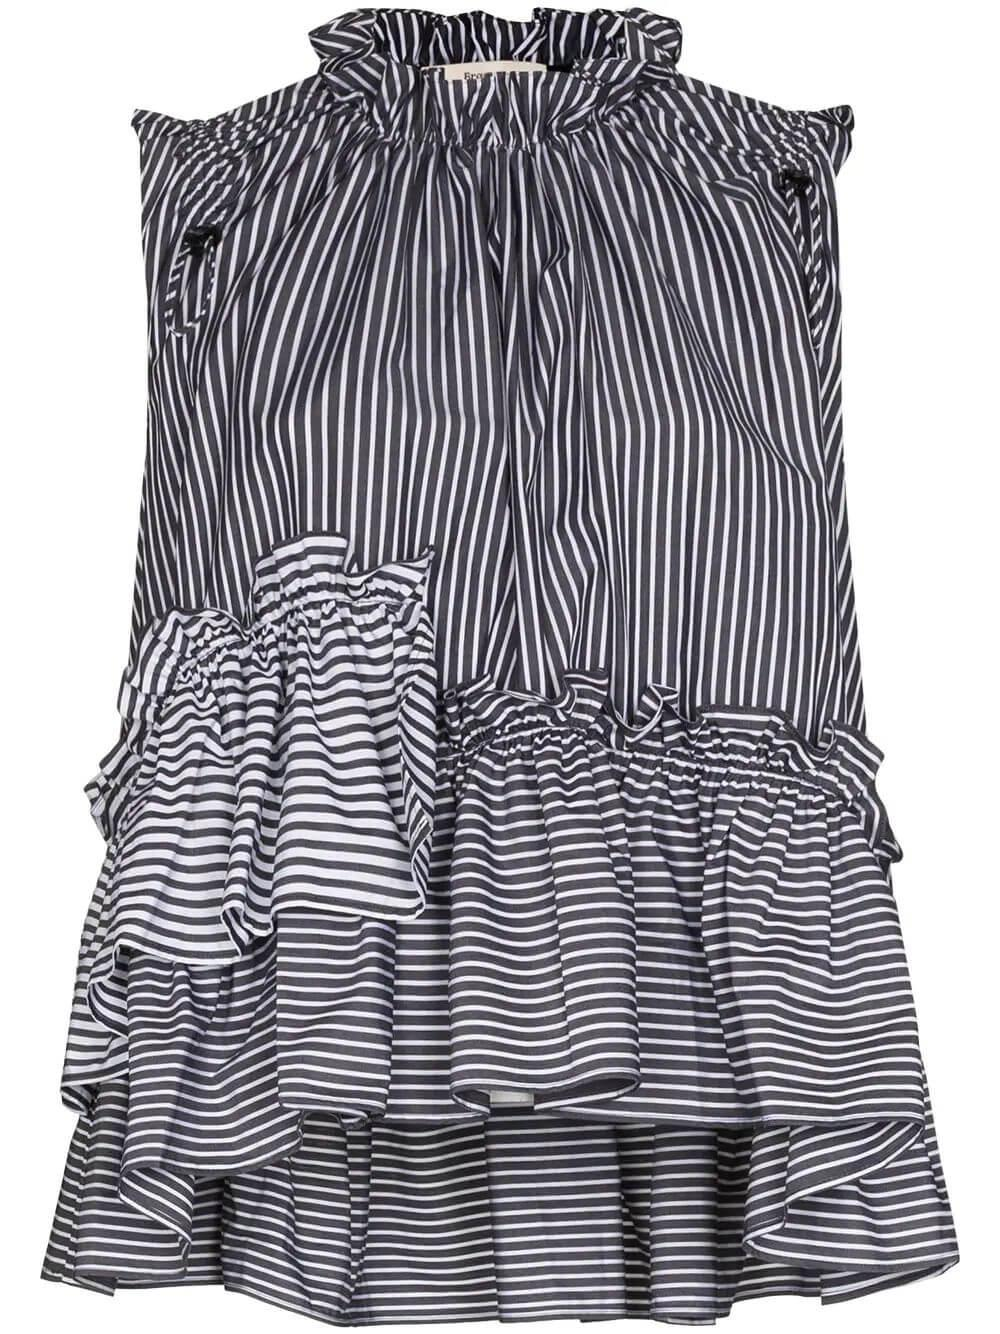 Ensley Striped Top Item # SS21-009-A